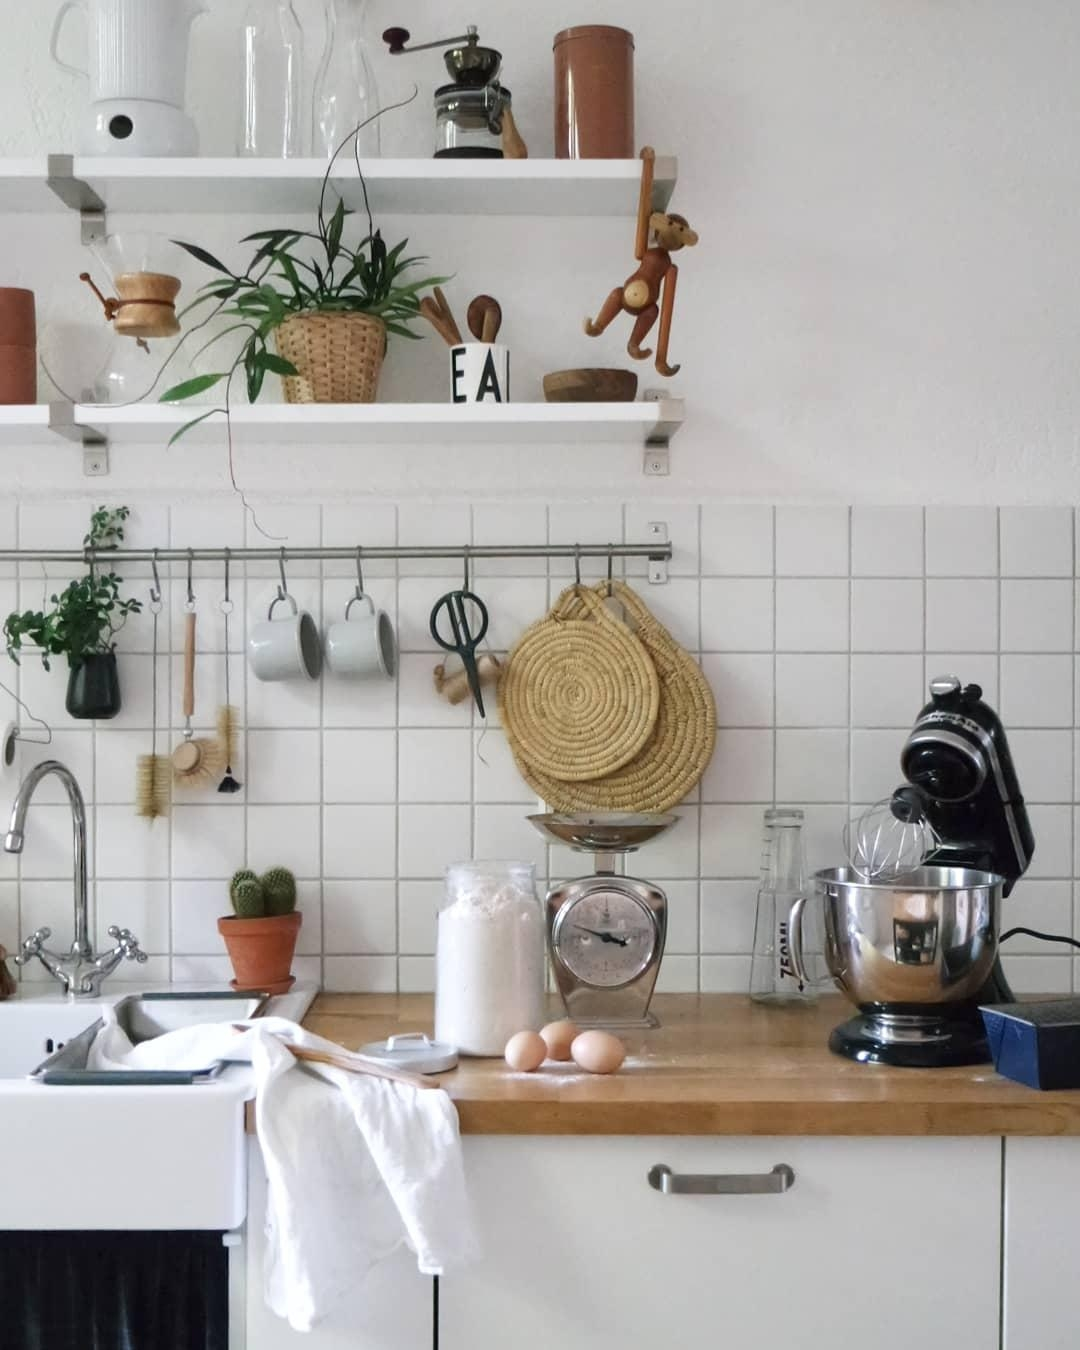 #kitchenstories #kitcheninspo #altbau #küche #altbauliebe